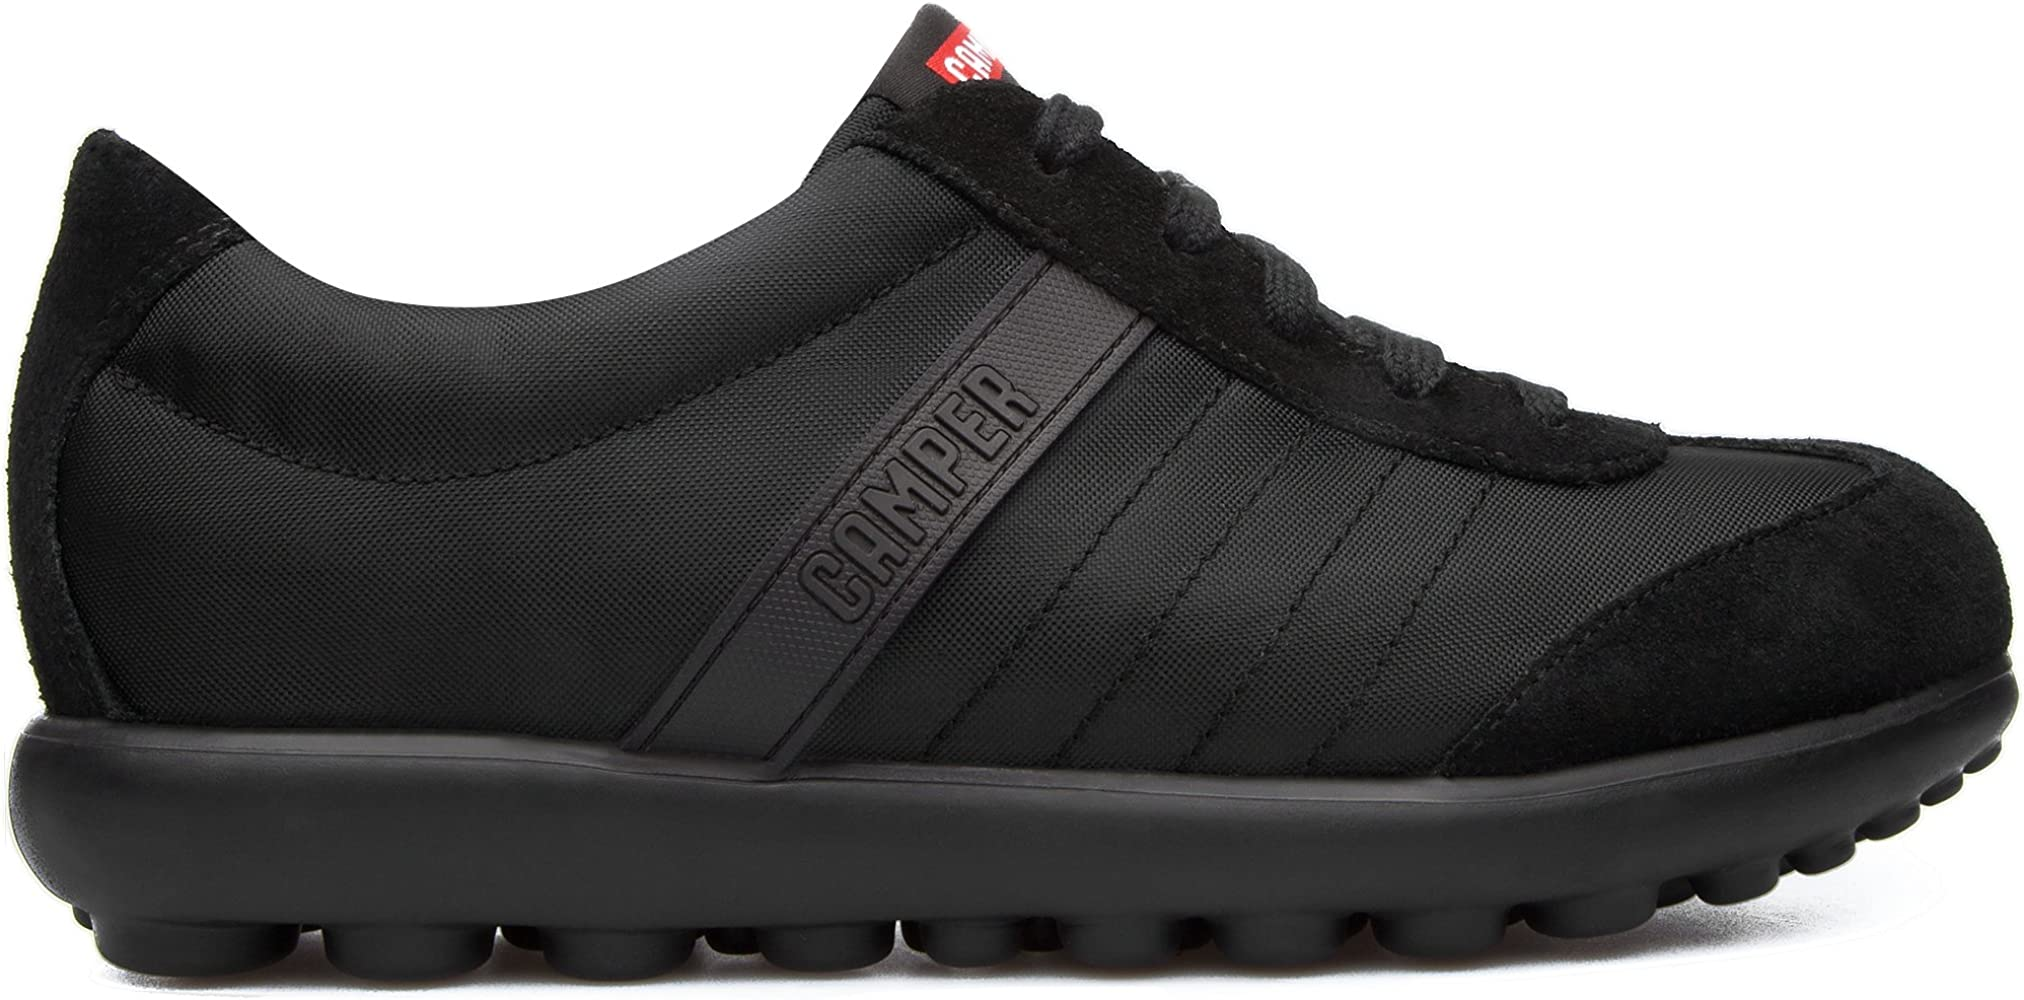 Camper Runner Black Leather 38 EU: Zapatos y complementos